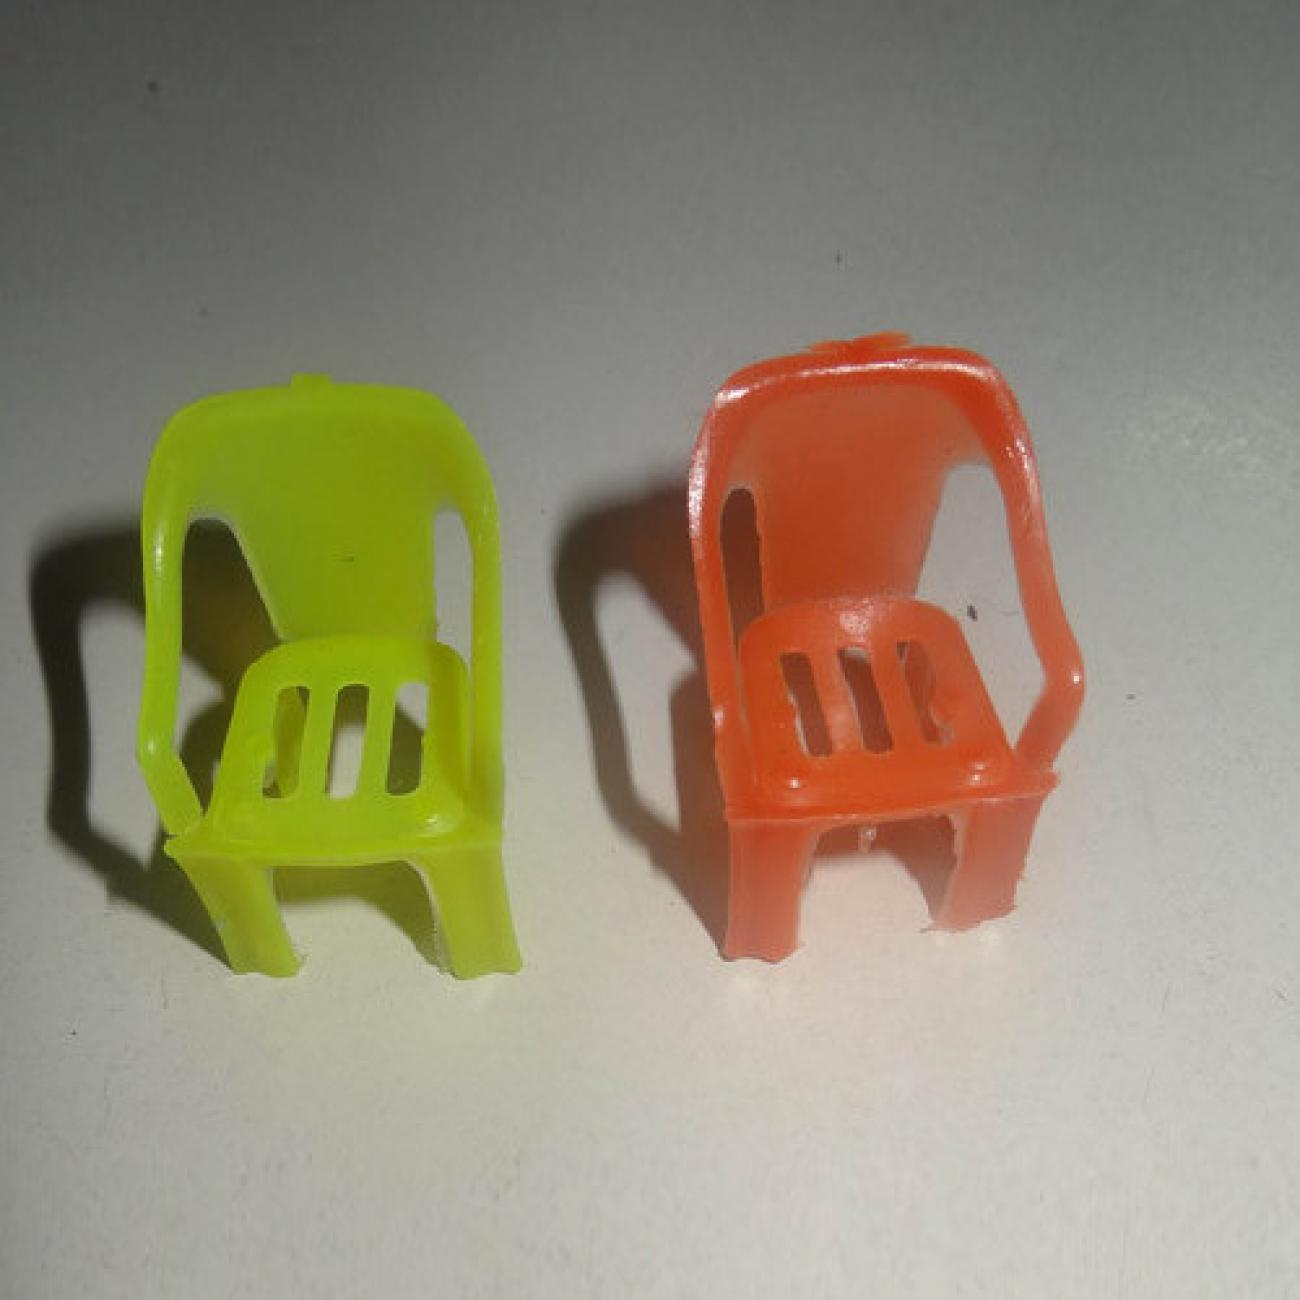 chair-toy-500x500